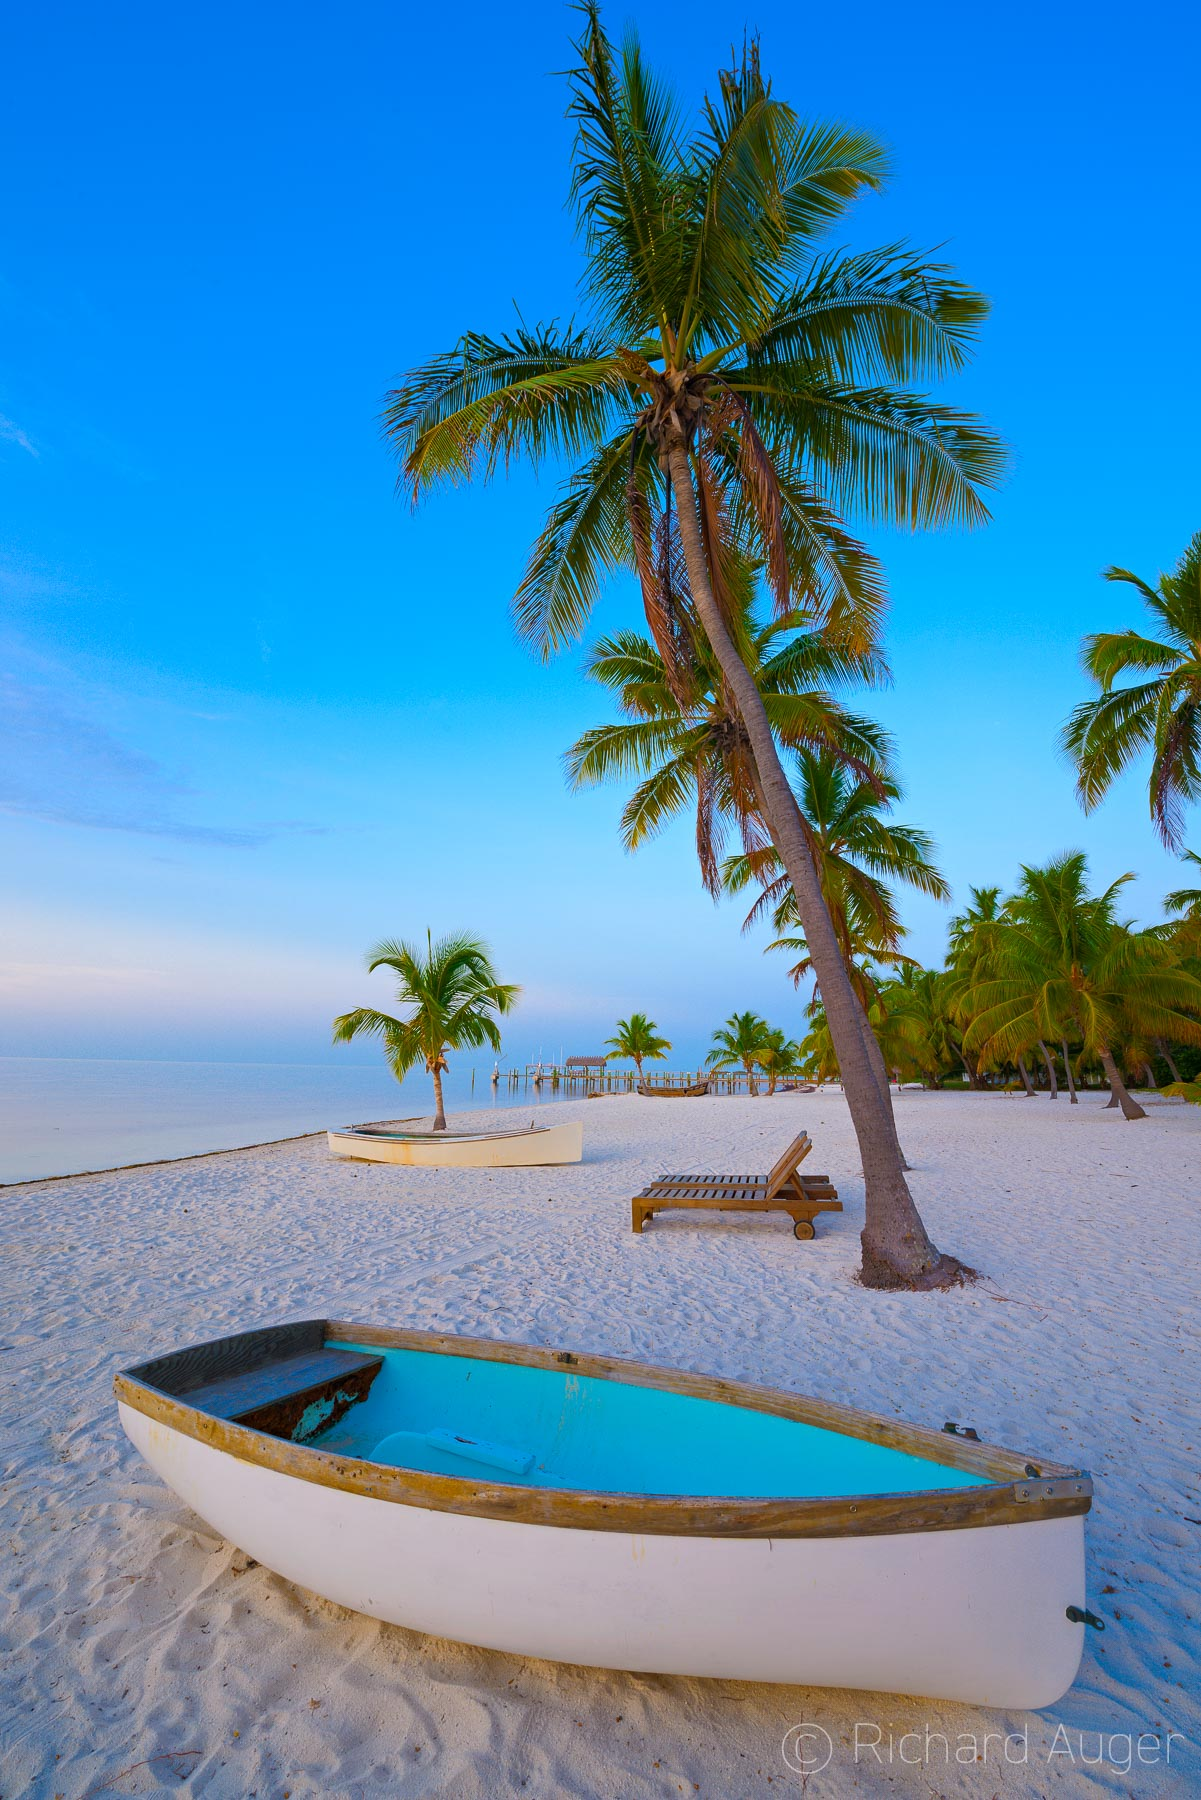 Islamorada, Florida Keys, Key West, Beach, Calm, Morning, Boat, Photograph, Richard Auger